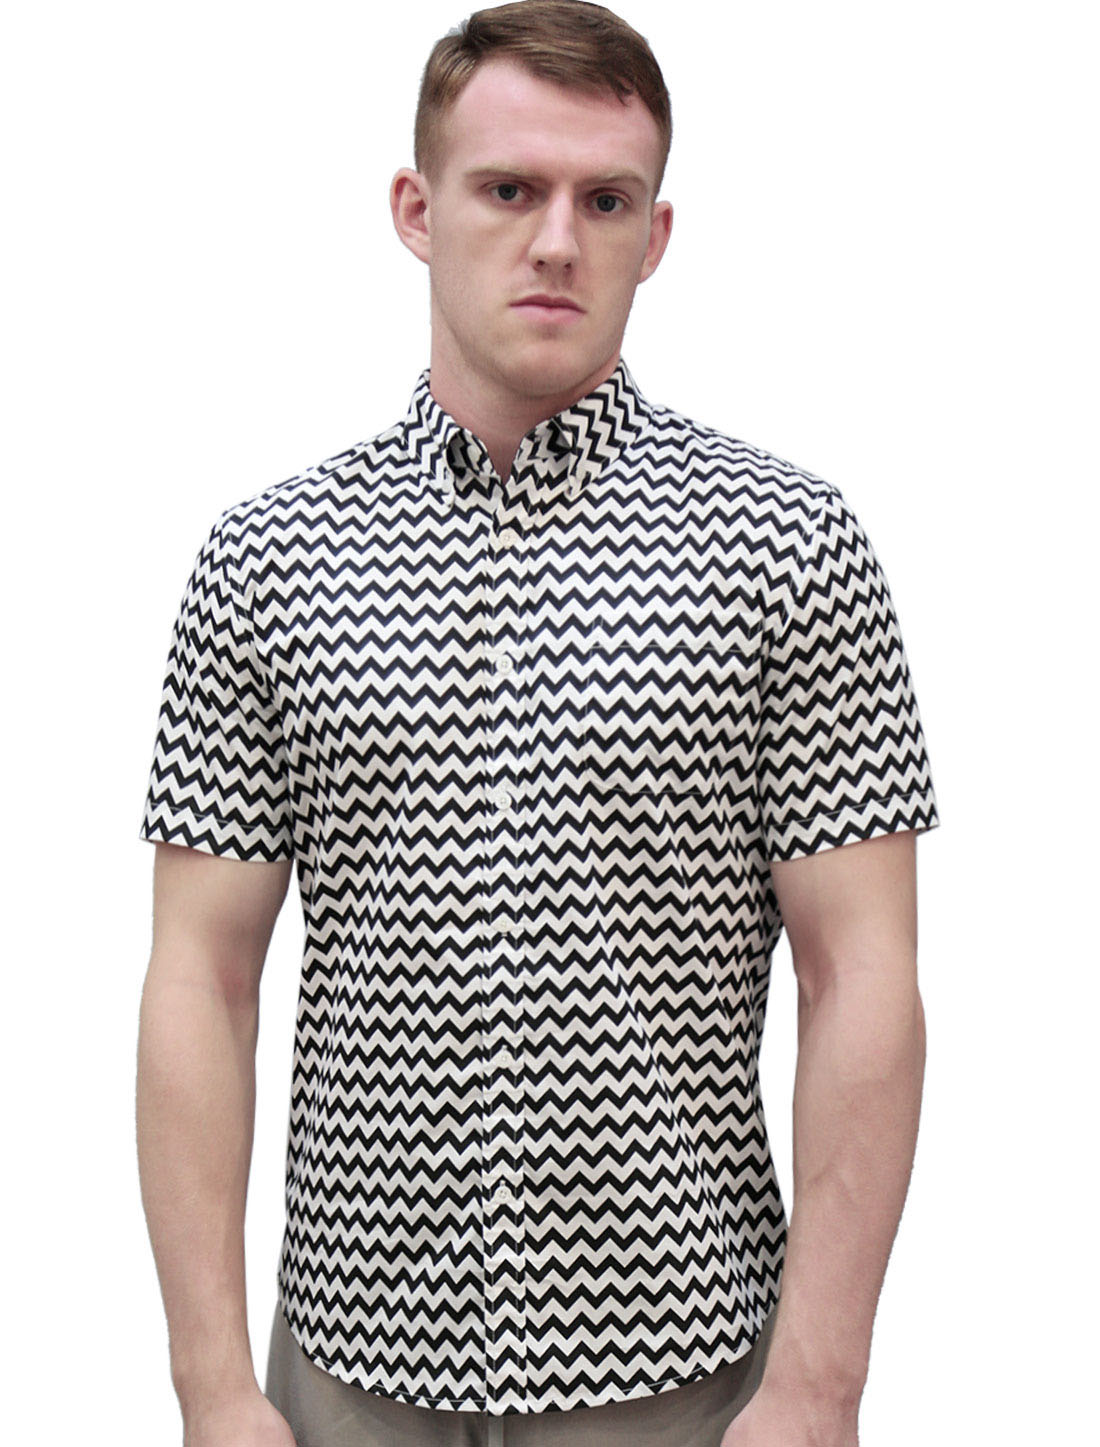 Men Zigzag Print Short Sleeves Button Down Shirt Black White S